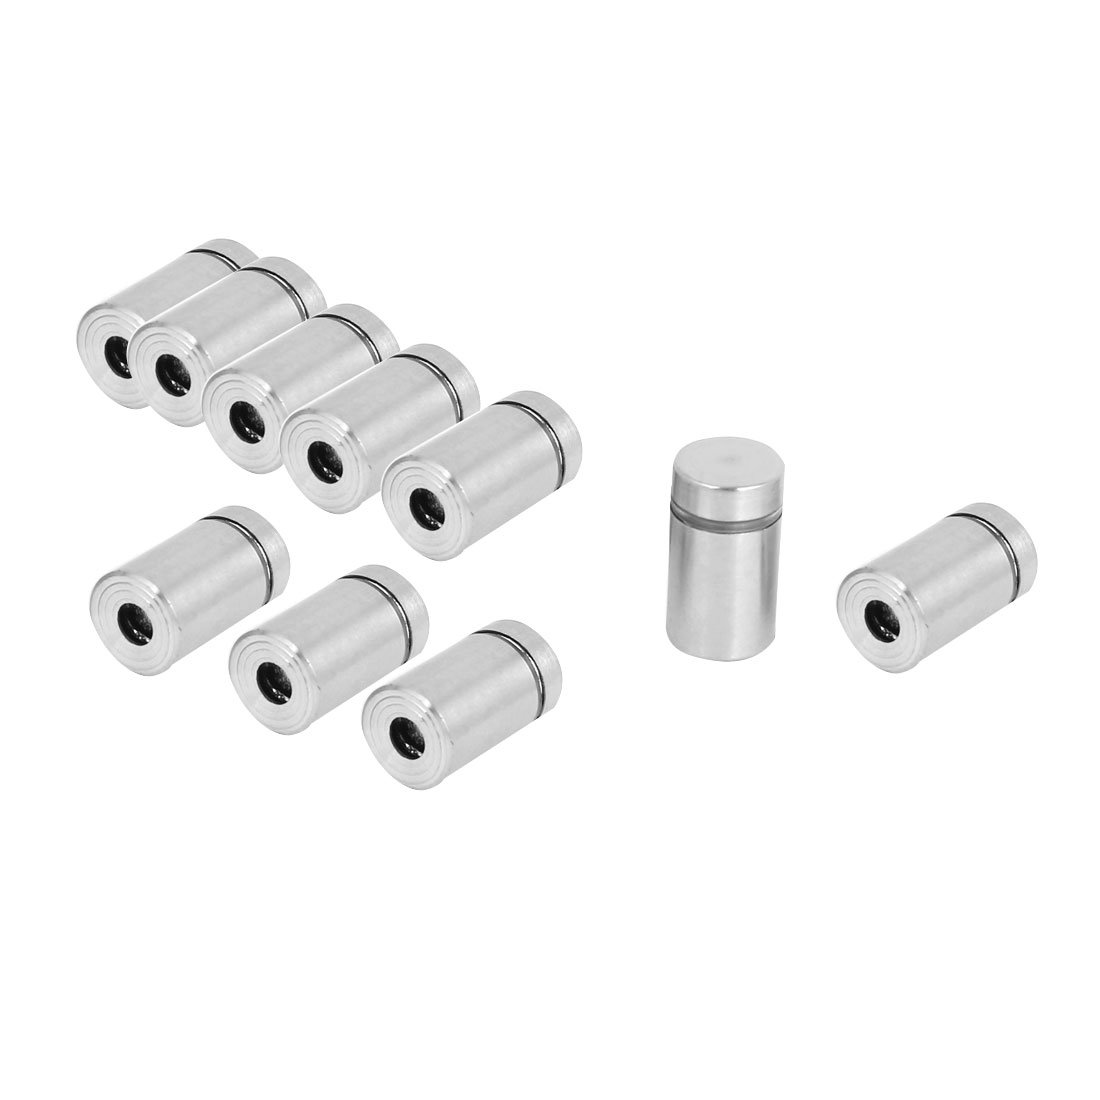 Uxcell a15041500ux0269 Stainless Steel Advertisement Screws Glass Standoff 12x23mm Pack of 10